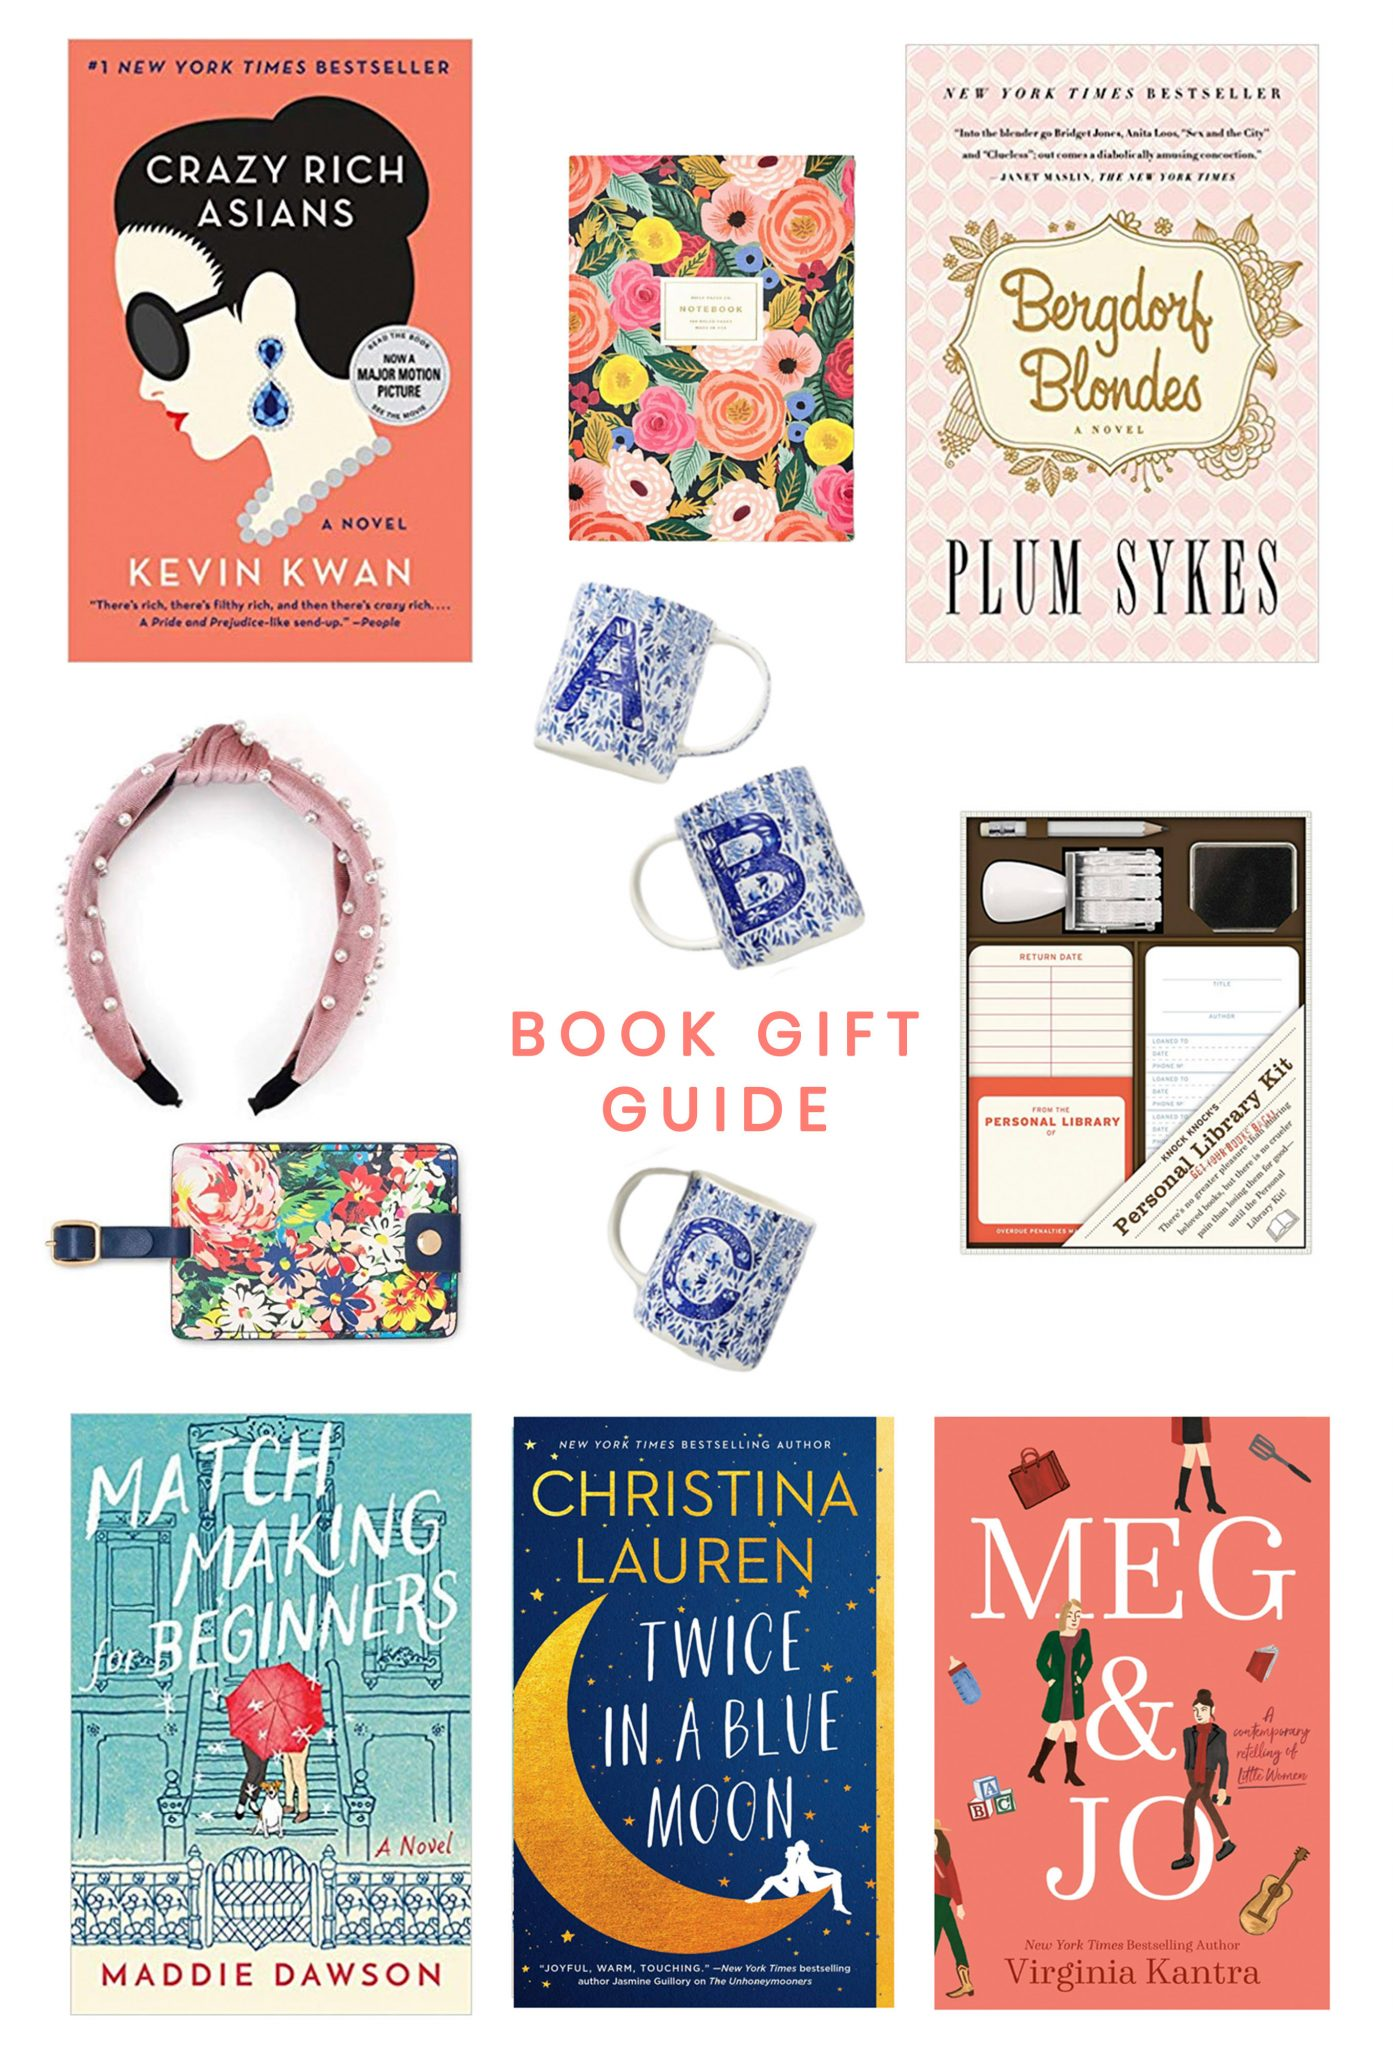 Book Gift Guide 2019 - Ashley Brooke